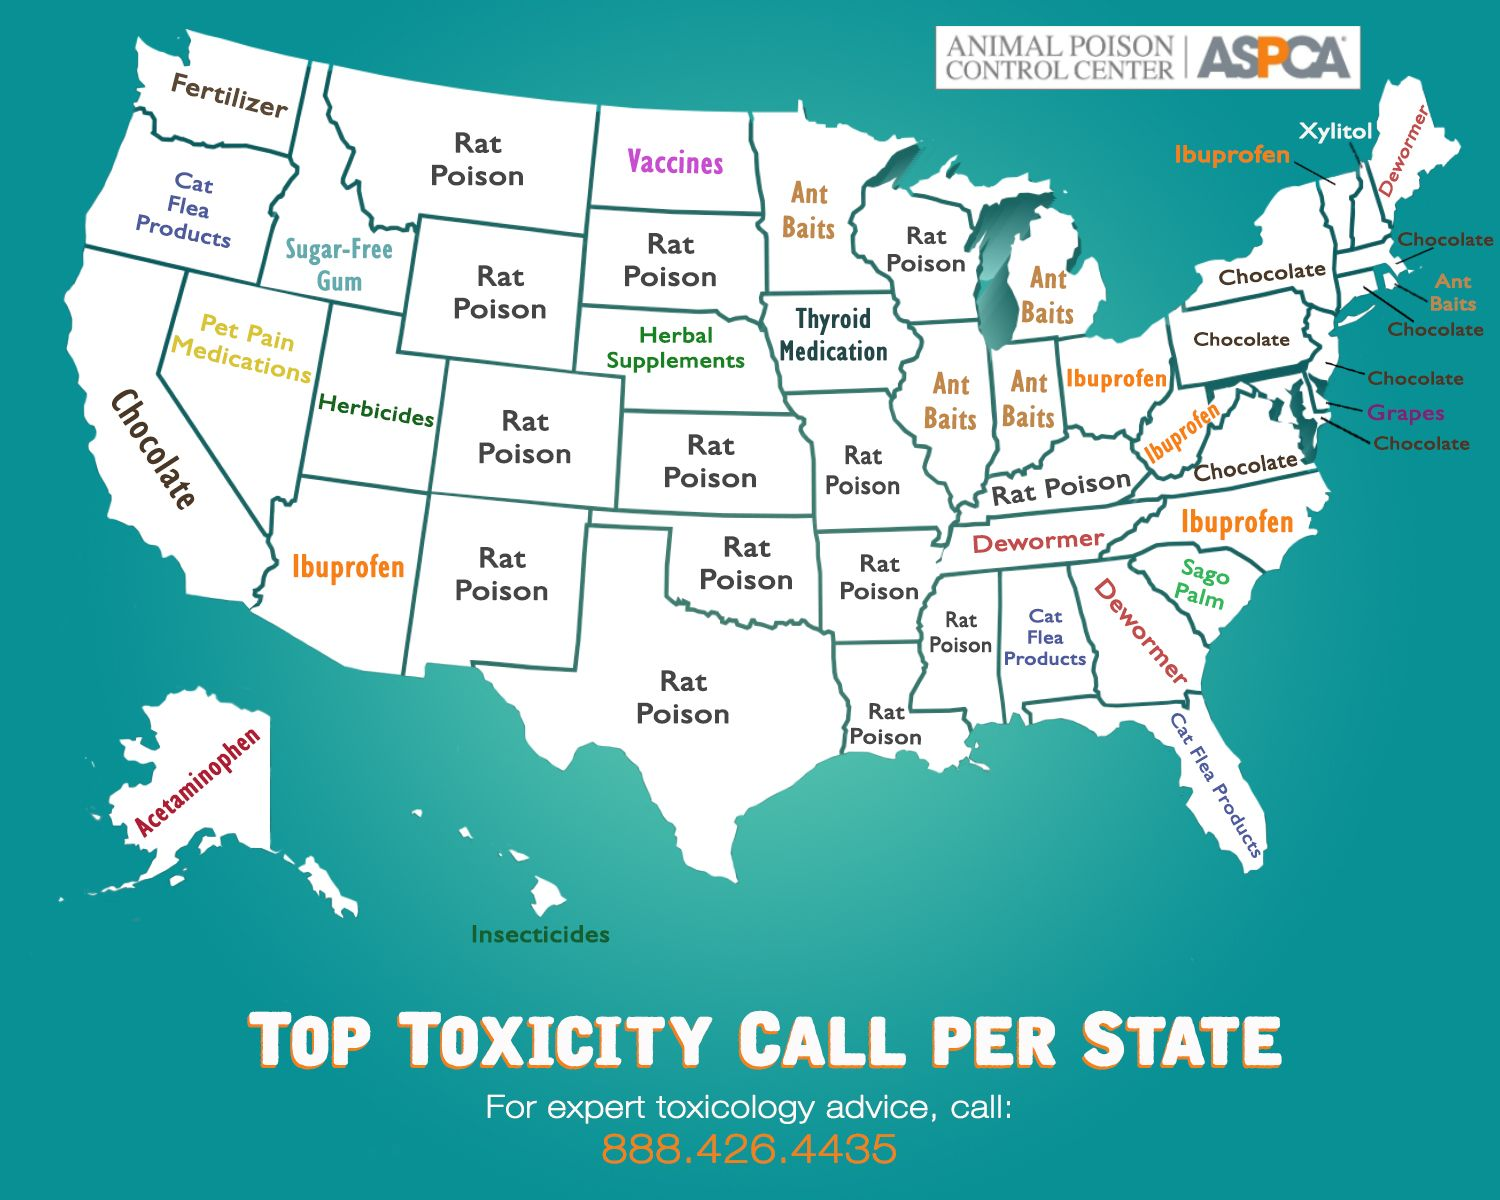 What S The Top Pet Toxin In Your State The Aspca Animal Poison Control Center Shares Its Most Frequent Call Topics Pets Aspca Love Your Pet